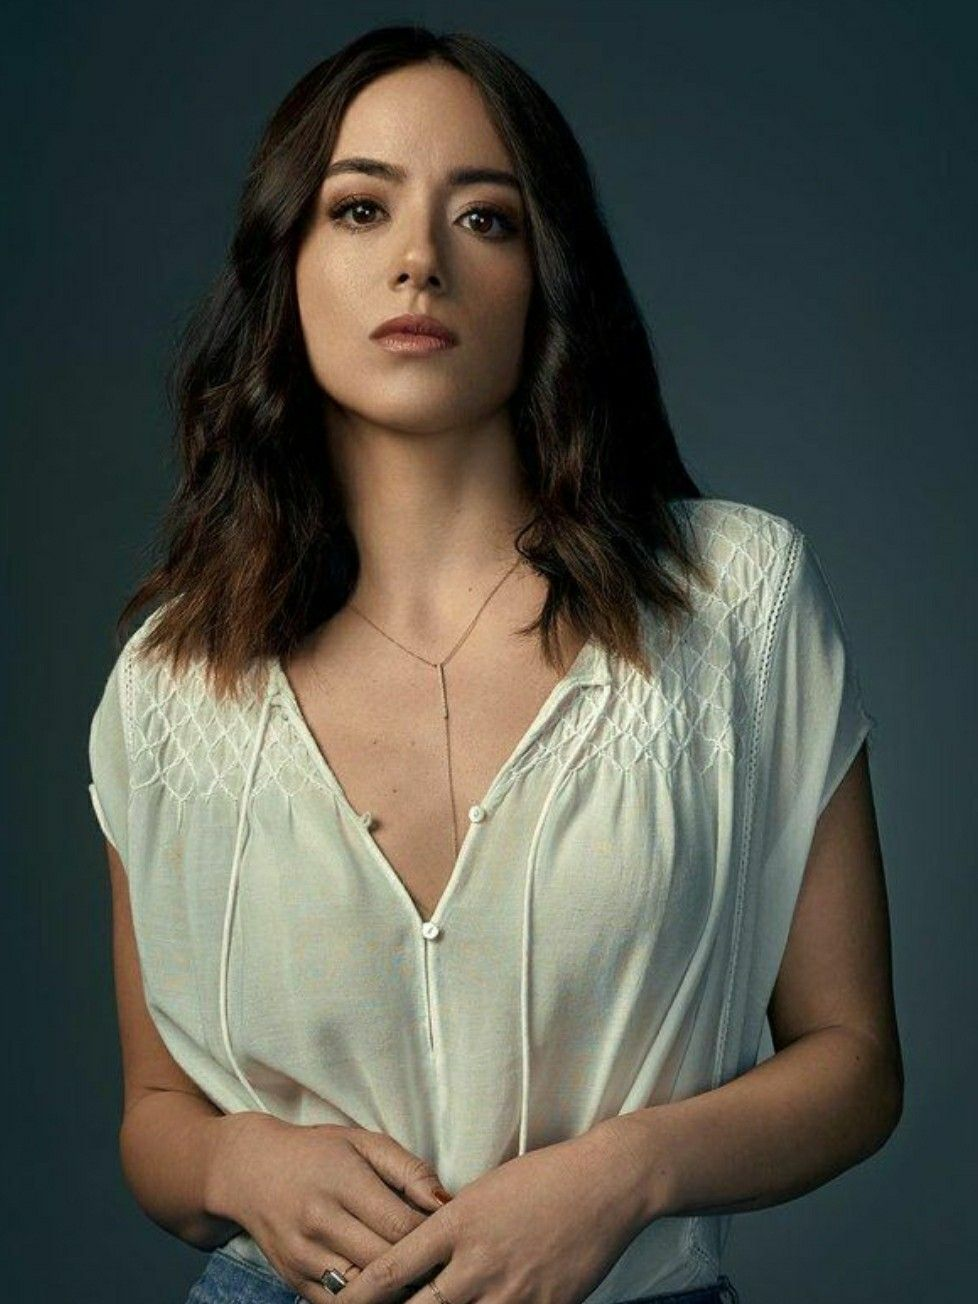 Celebrity Chloe Bennet naked (44 photos), Pussy, Cleavage, Feet, braless 2019